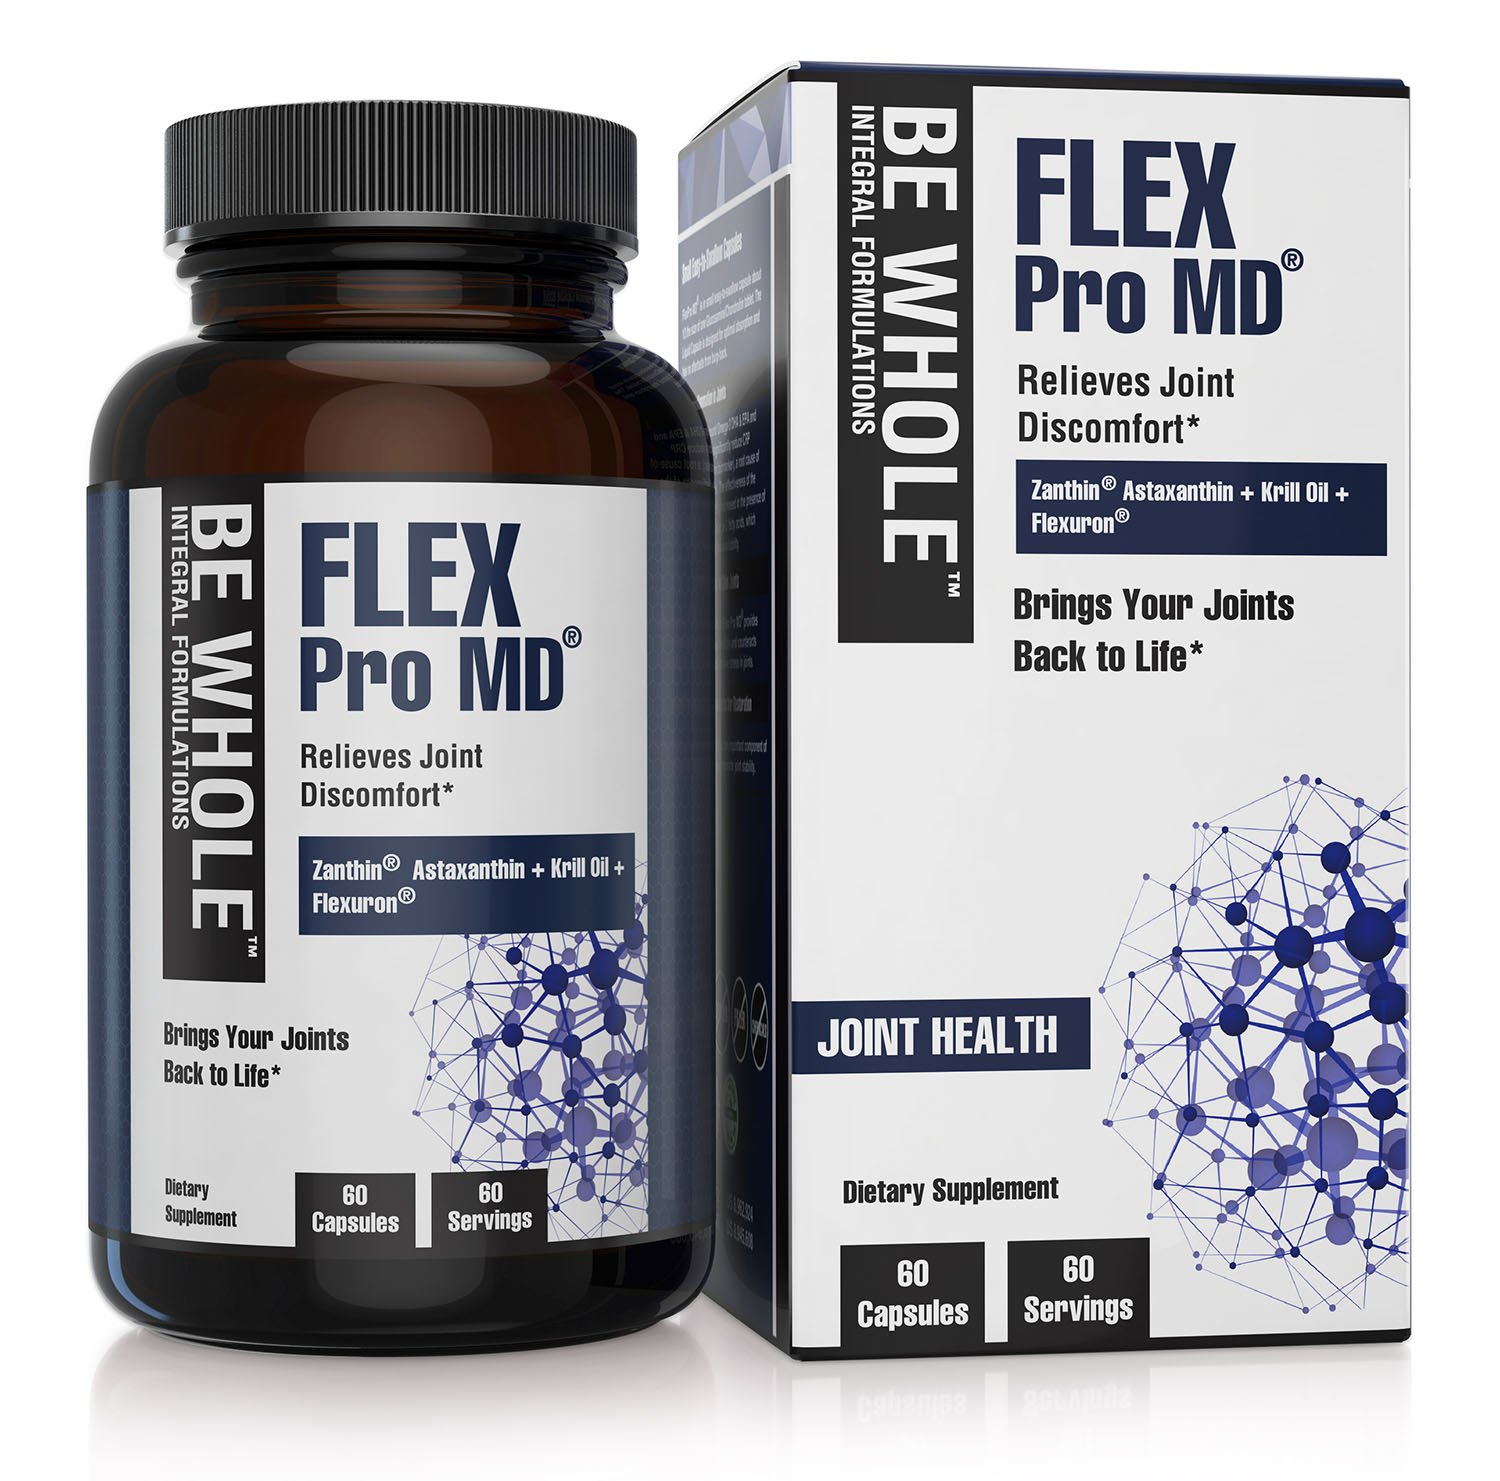 Flex Pro MD: Joint Pain Relief Supplement - Patented and Clinically Tested Formulation - 60 Capsules